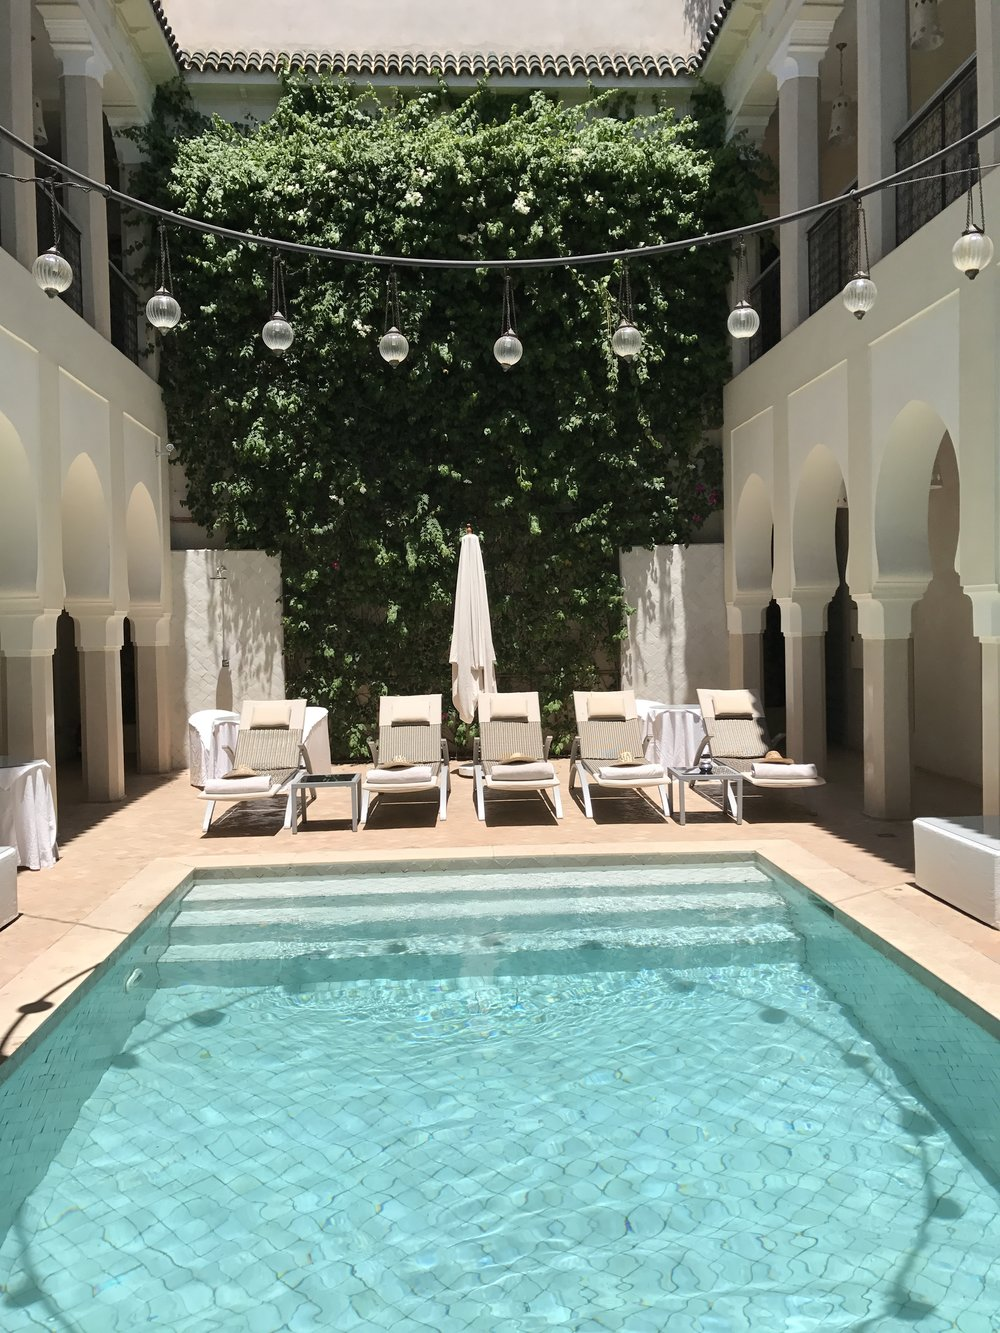 Marrakesh in July is Hot- I mean hot hot- so the pool brought some welcome relief.